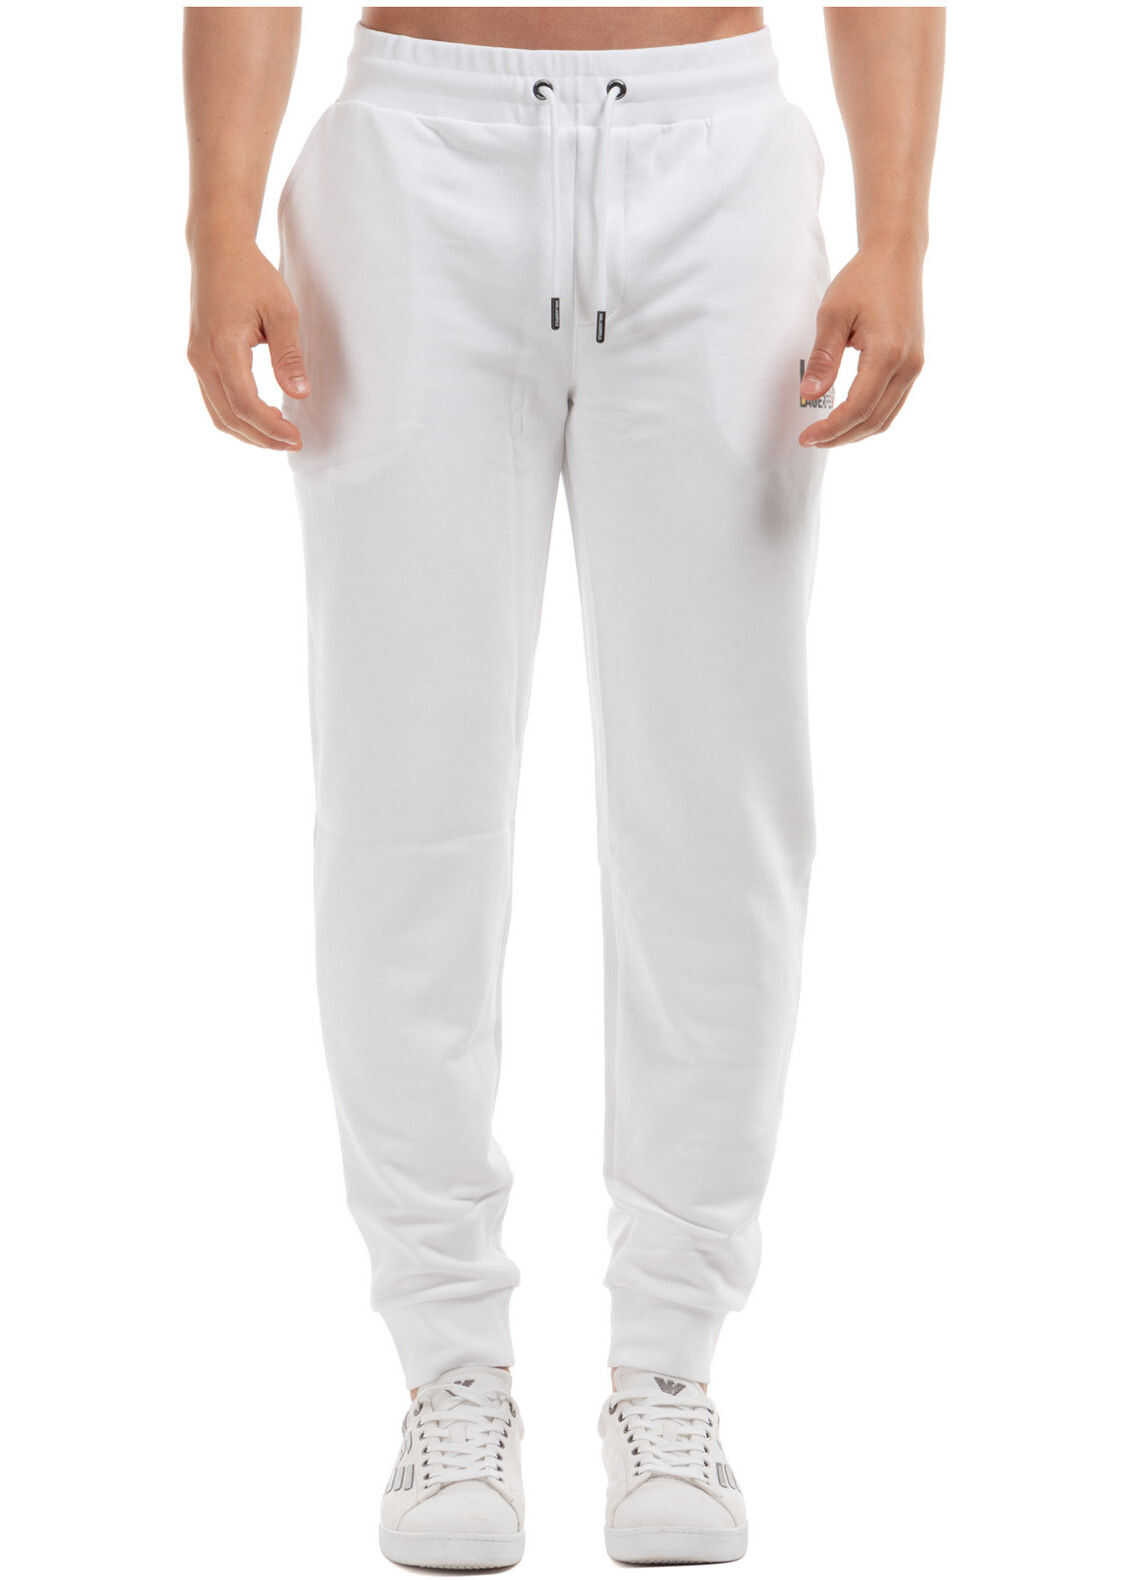 Karl Lagerfeld Tracksuit Trousers White